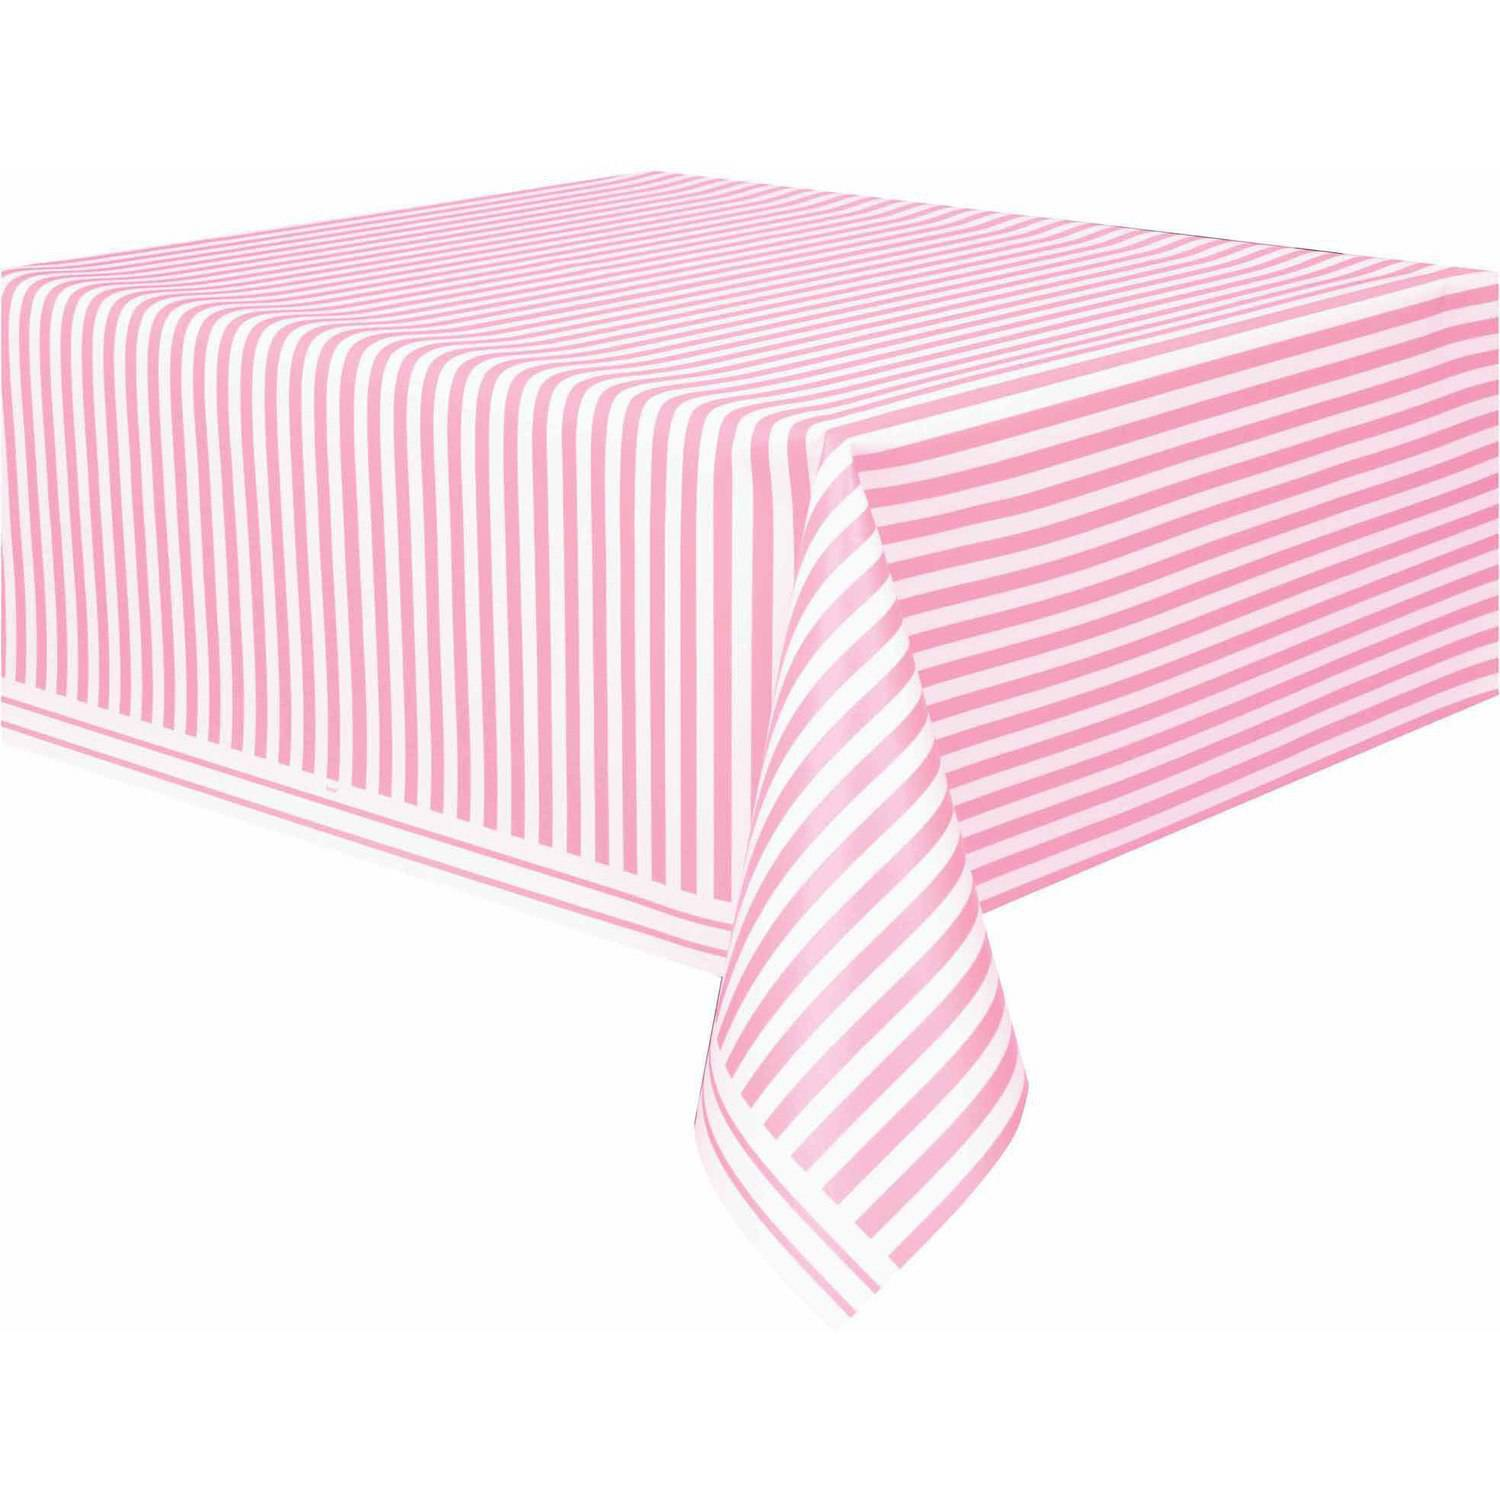 "Plastic Light Pink Striped Table Cover, 108"" x 54"""